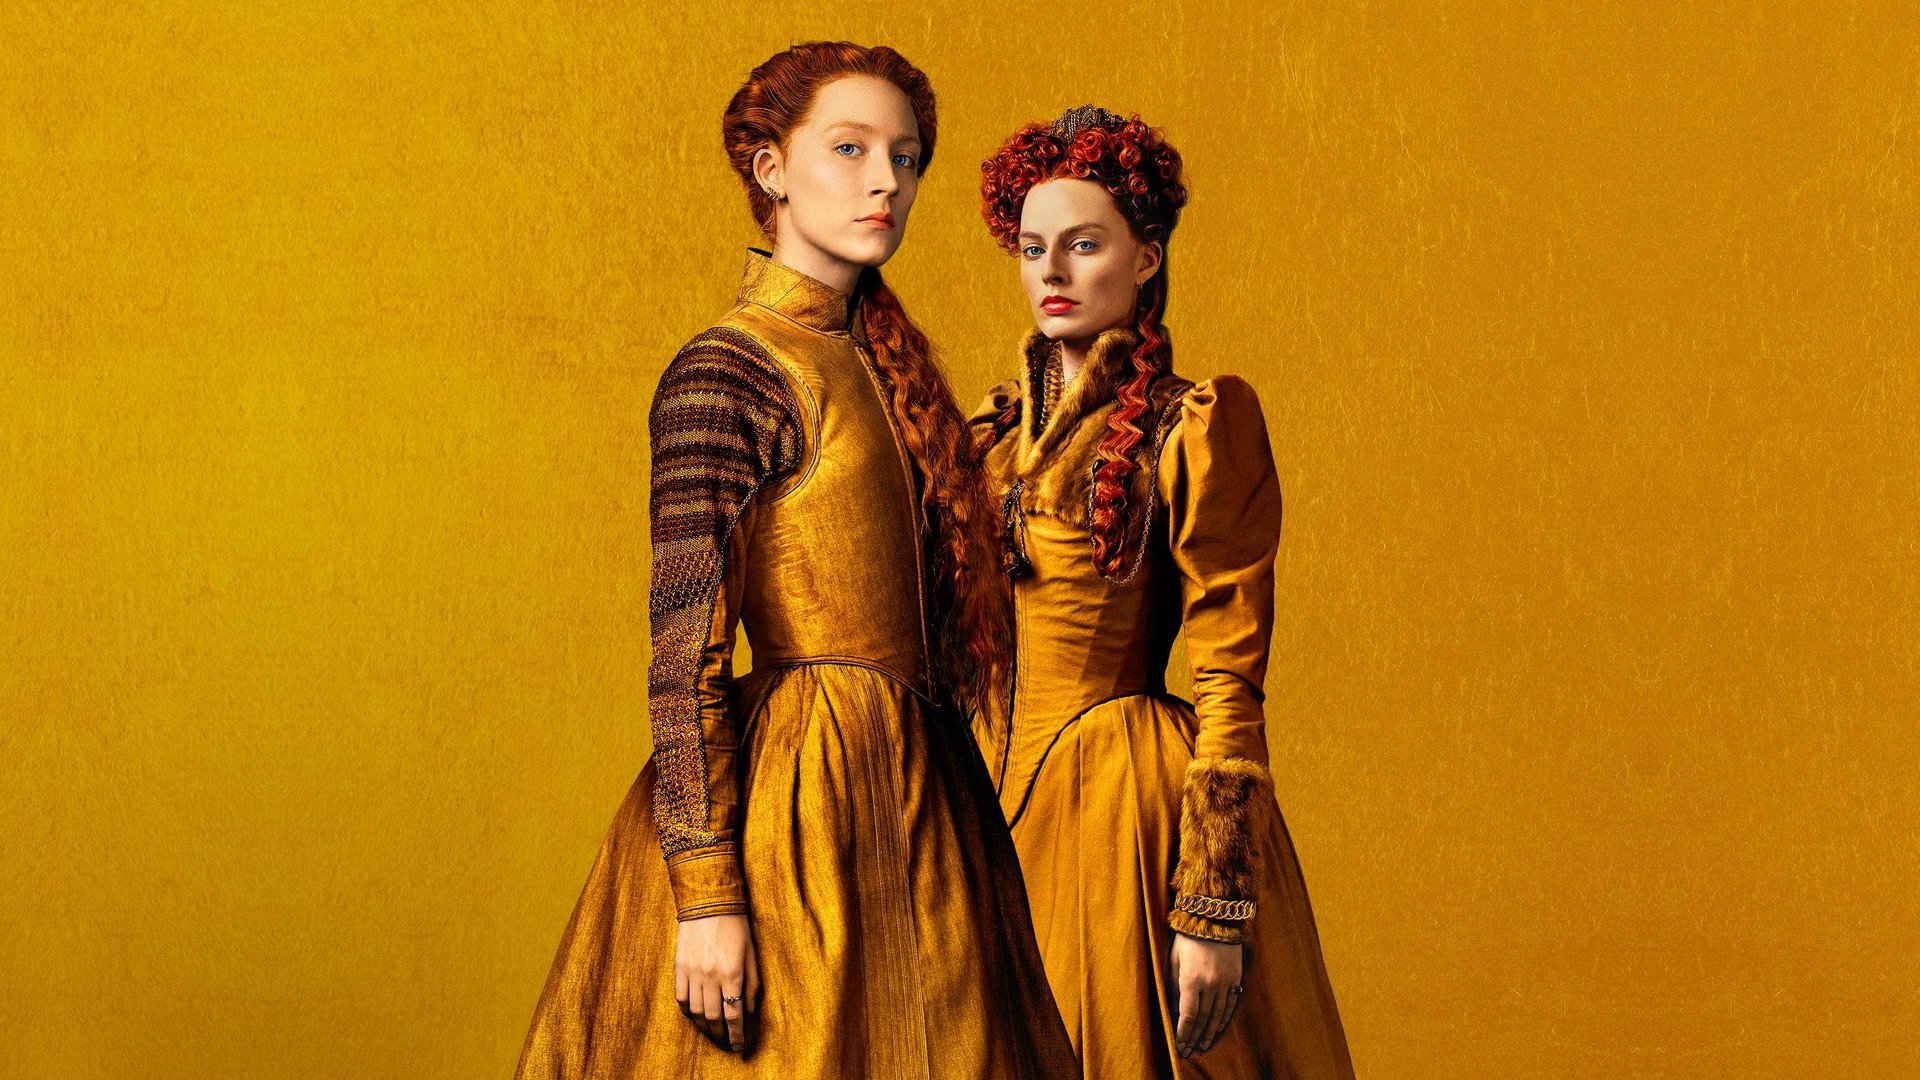 Margot Robbie and Saoirse Ronan in Mary Queen of Scots 2018 Movie 1920x1080